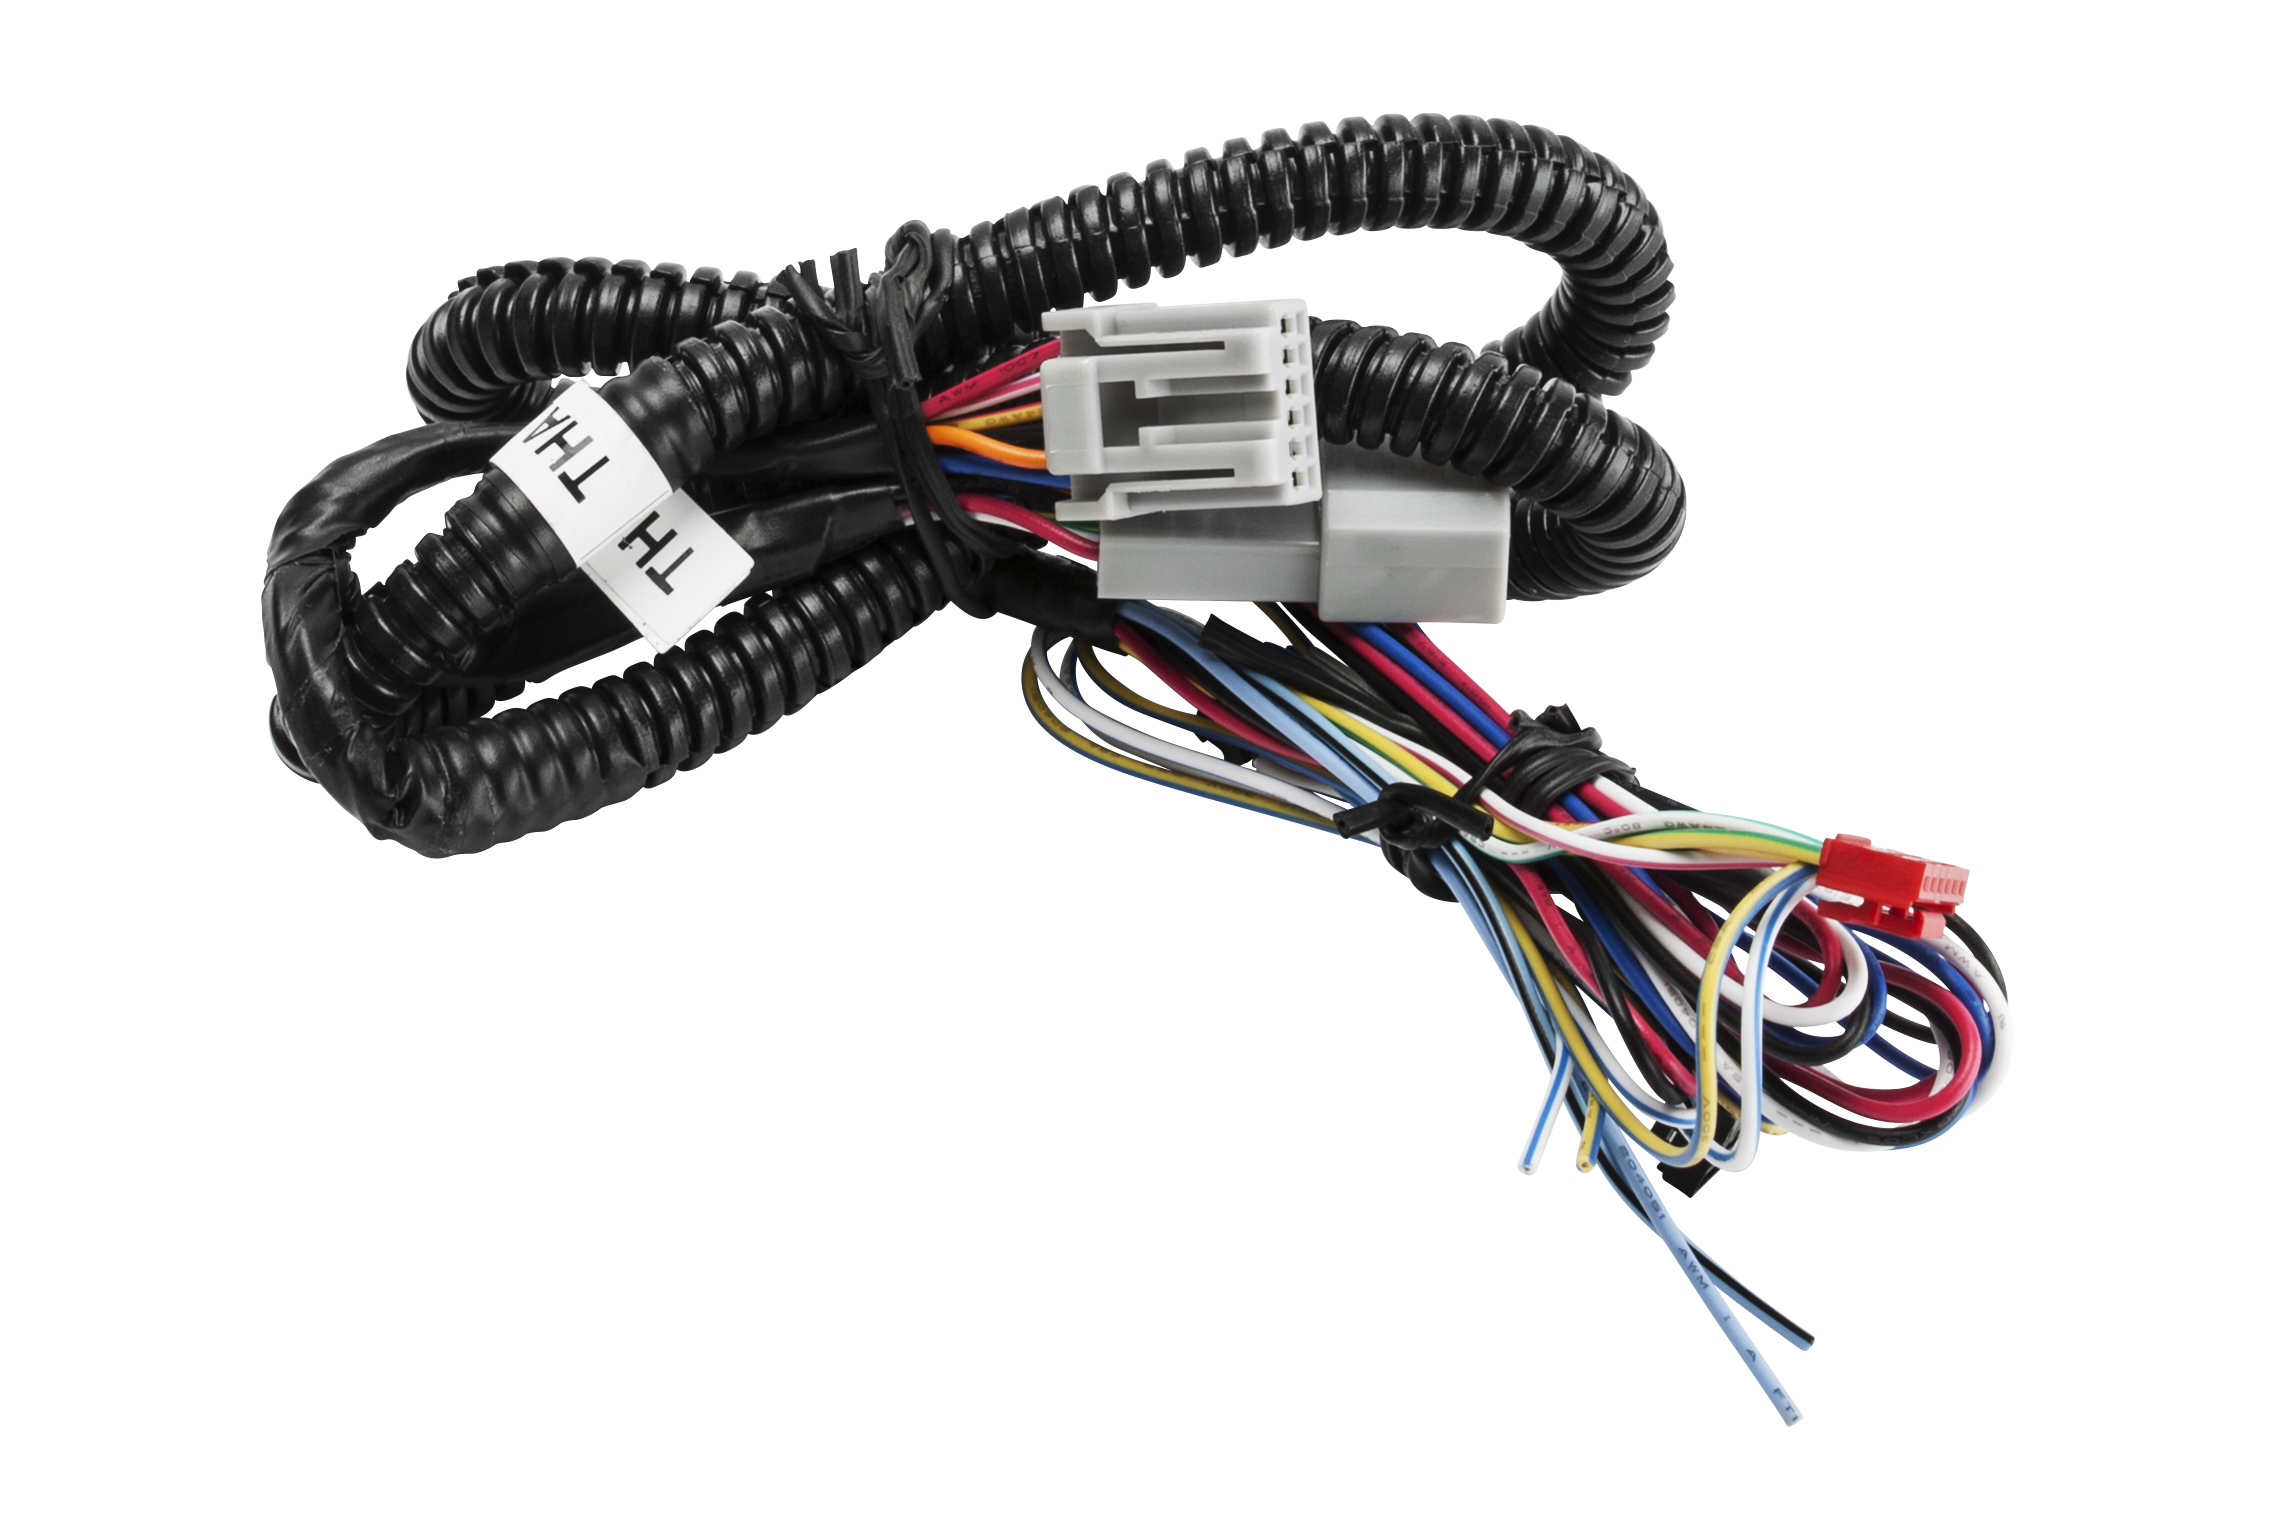 THAR-CHR6 Crimestopper Car Alarm Wiring Harness T-Harness